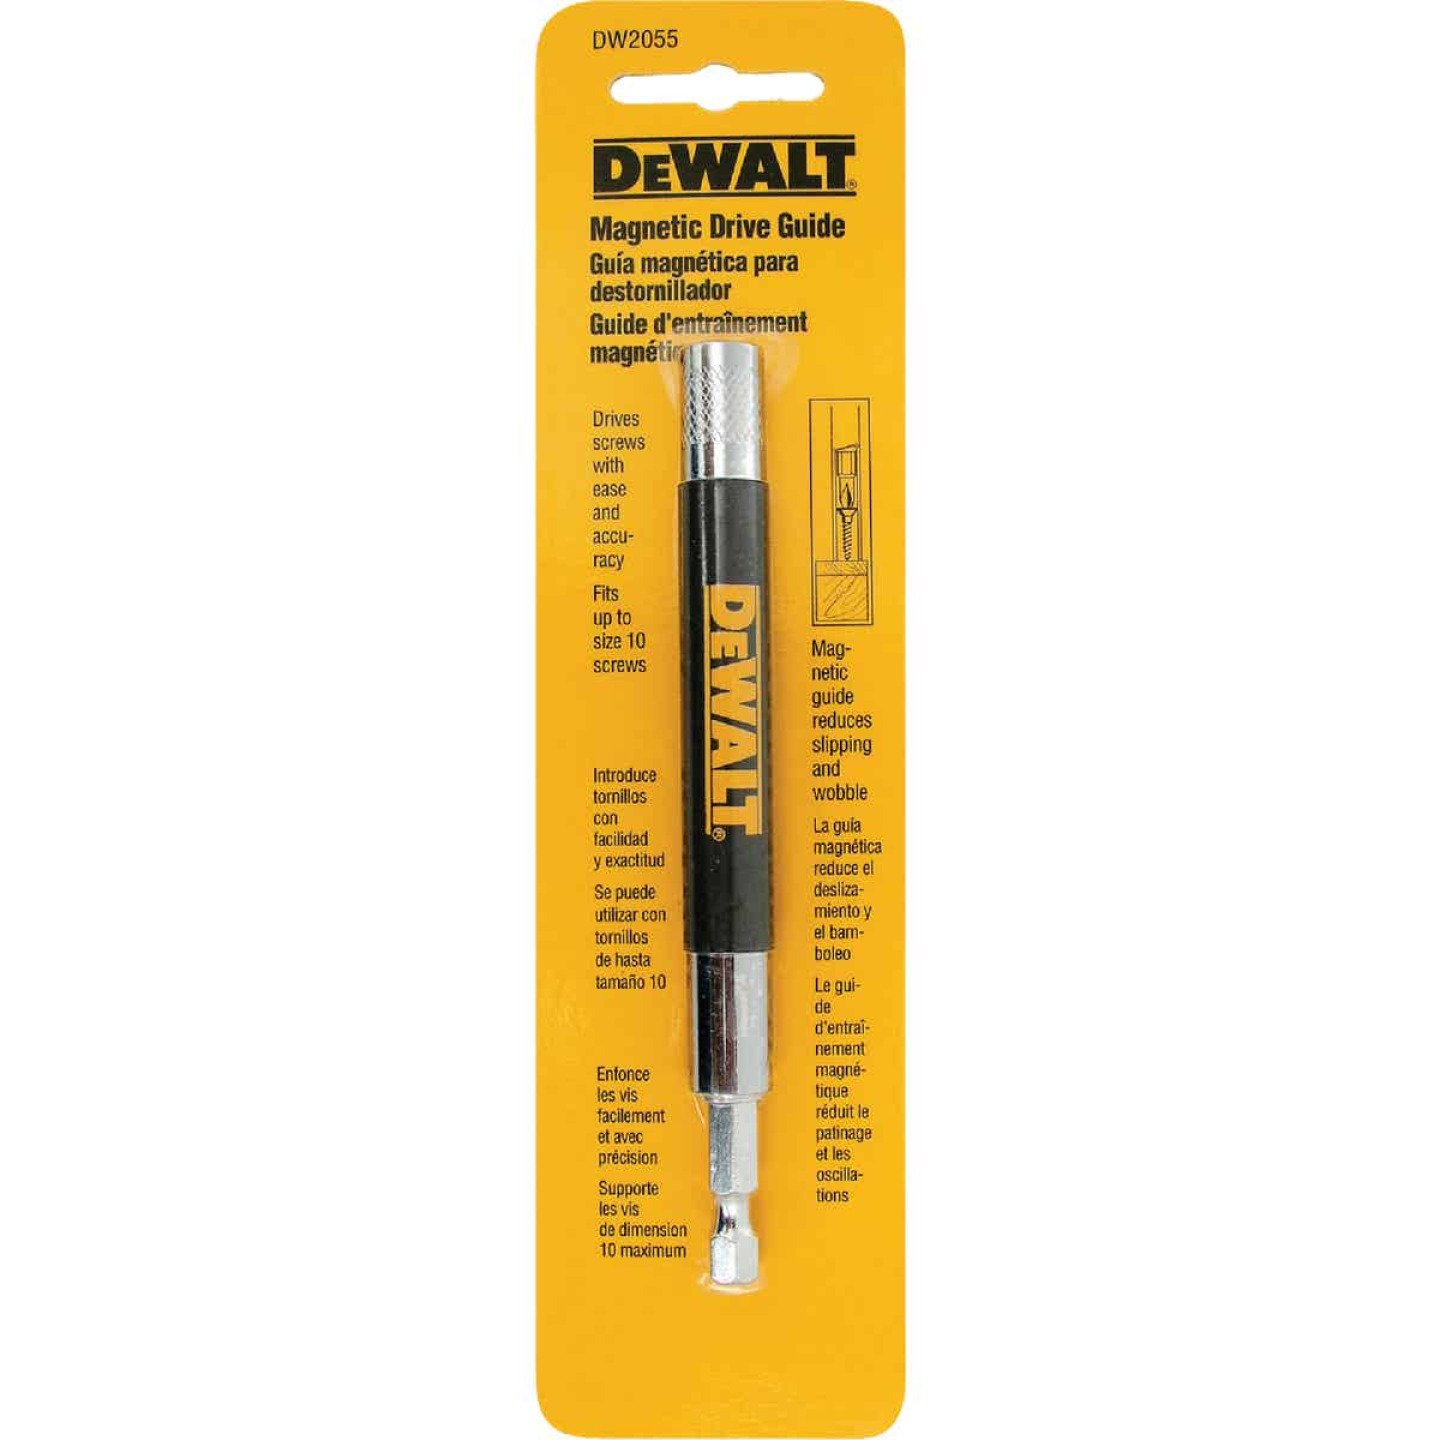 DeWalt 1/4 In. Hex x 6 In. Magnetic Drive Guide Bit Holder Image 3